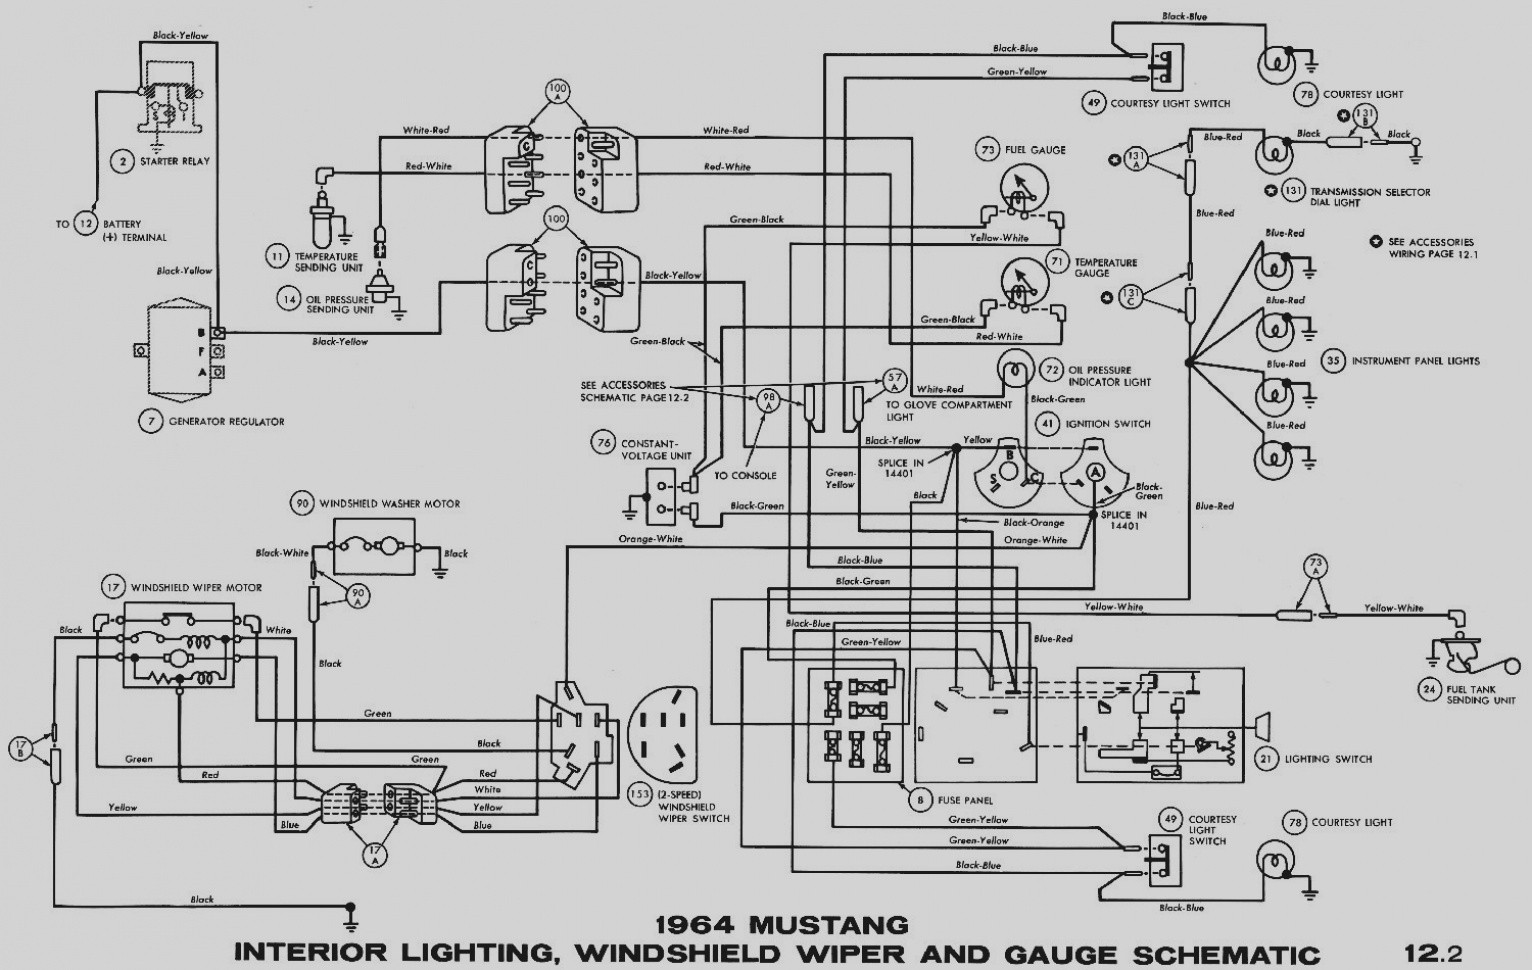 Wiring Diagram Ford Pinto - New Wiring Diagrams on